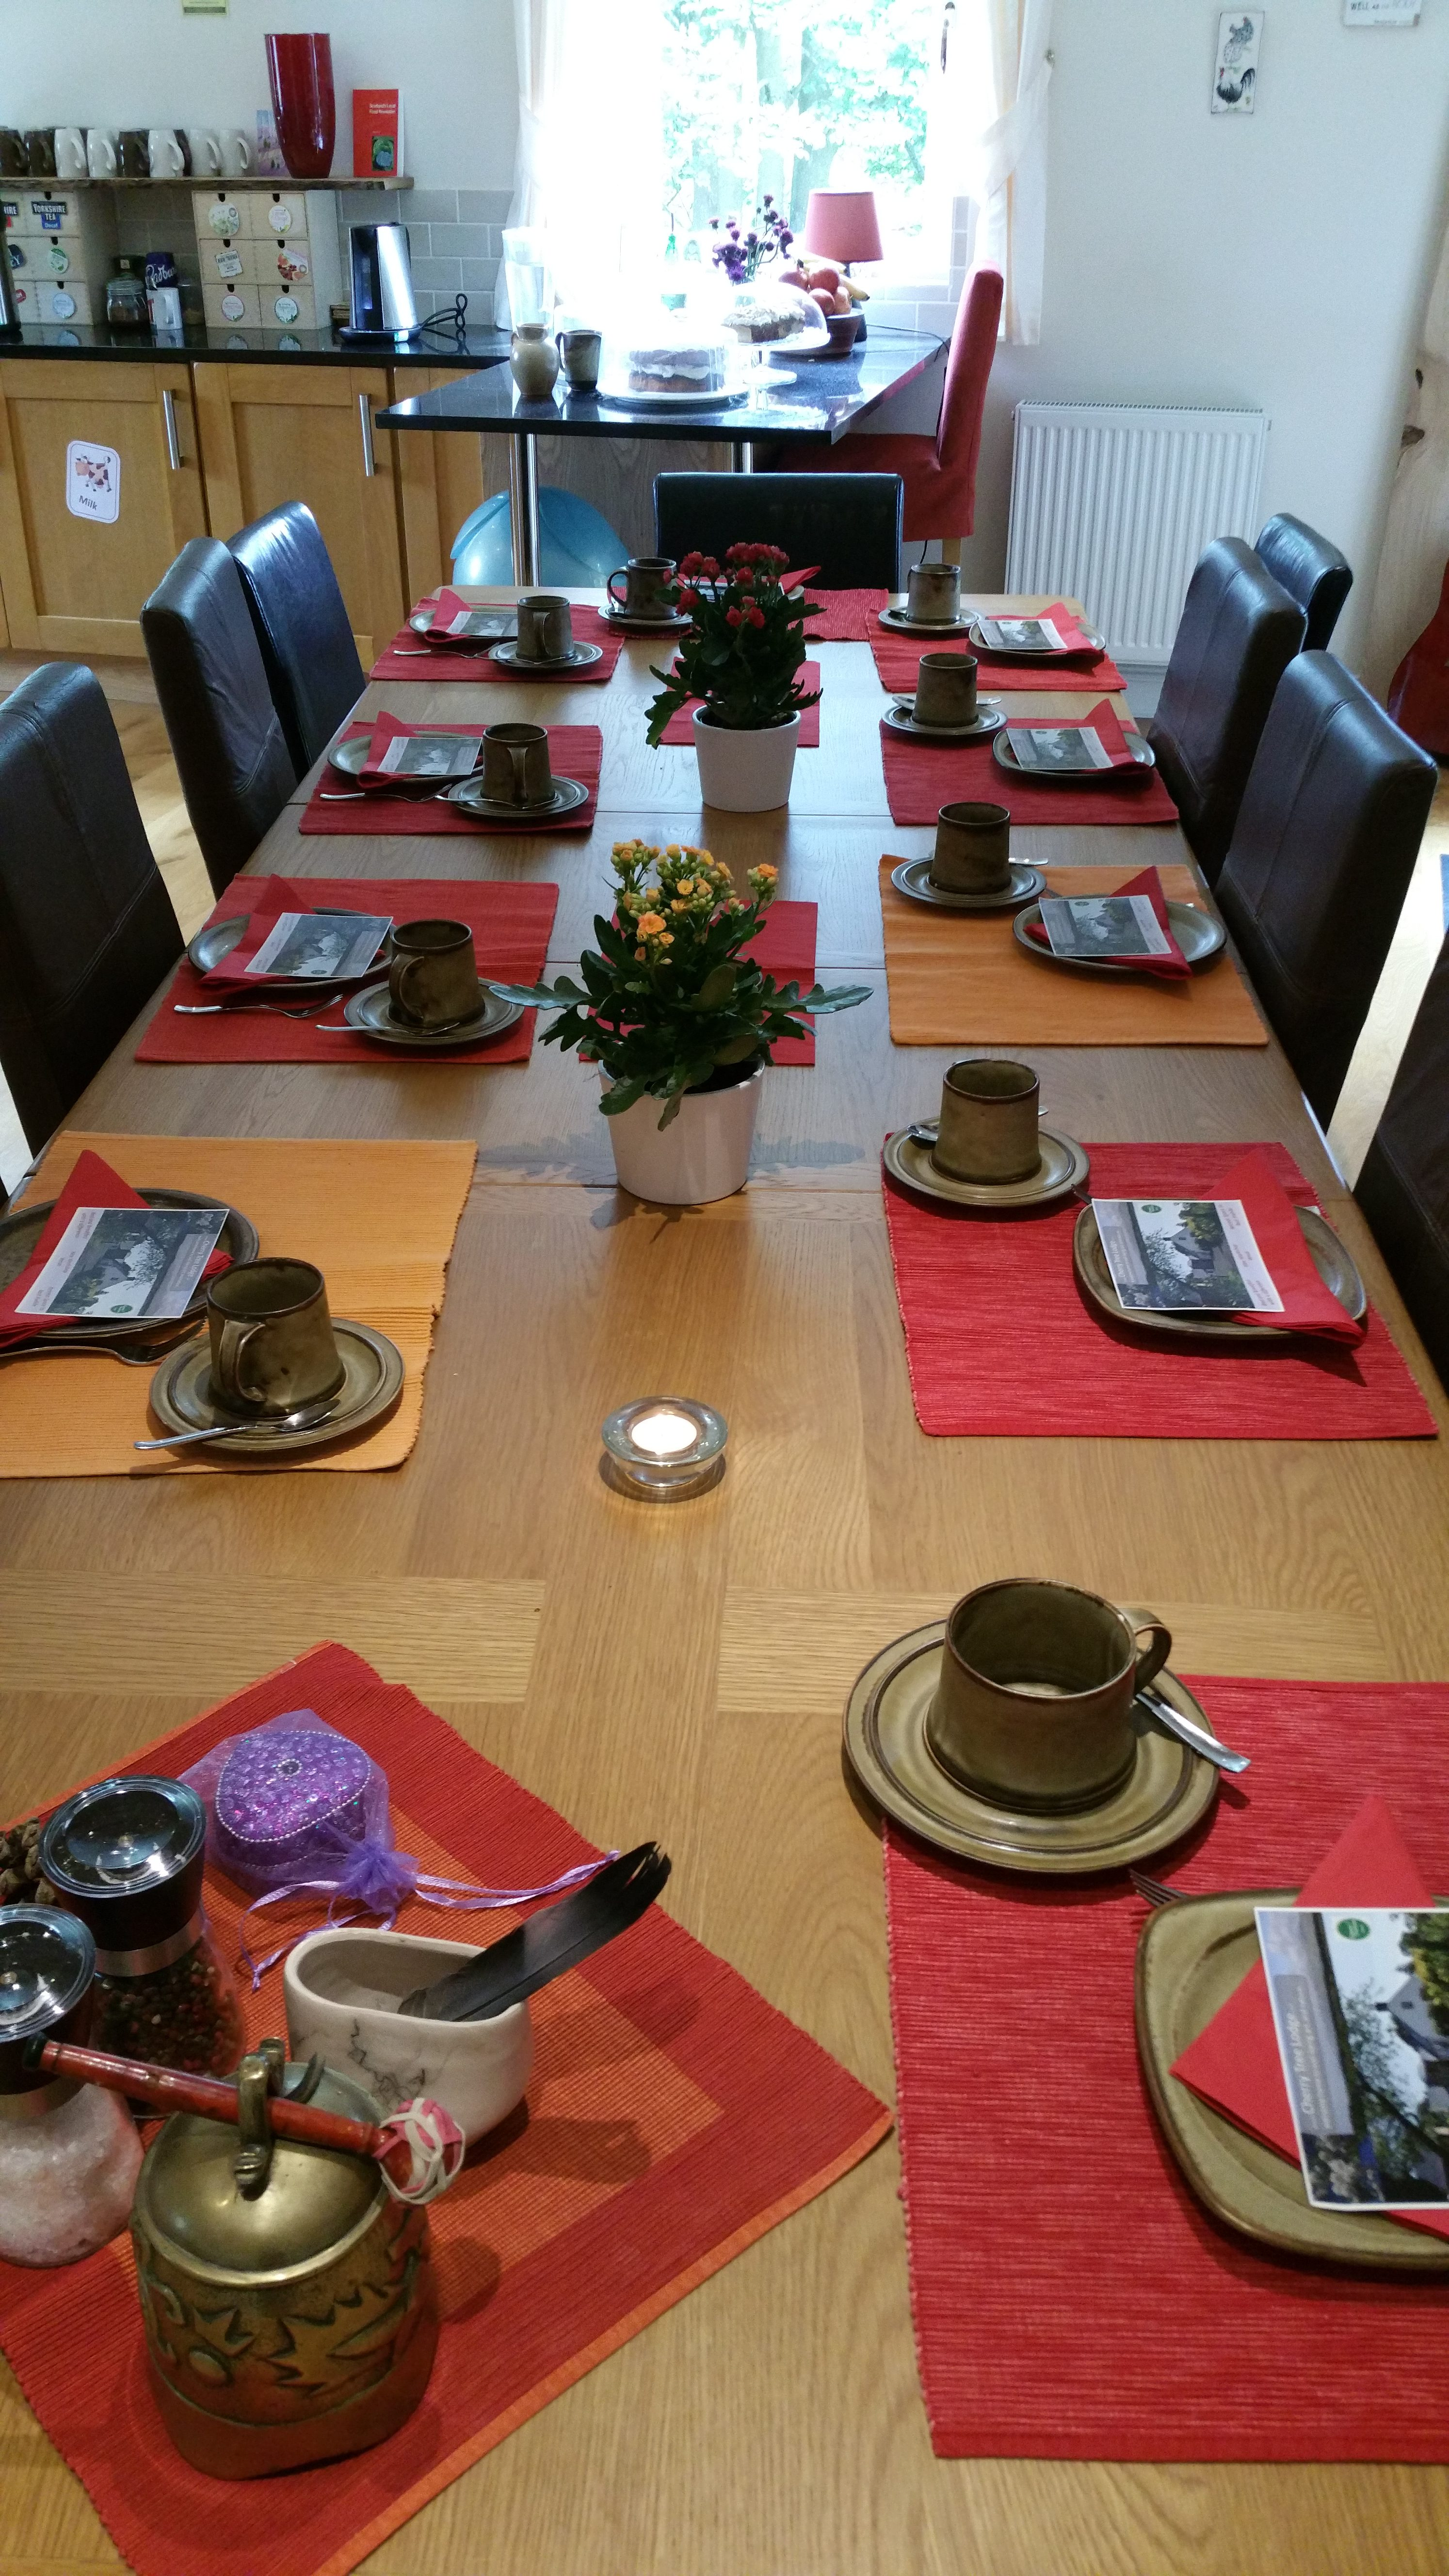 h table awaits group dining